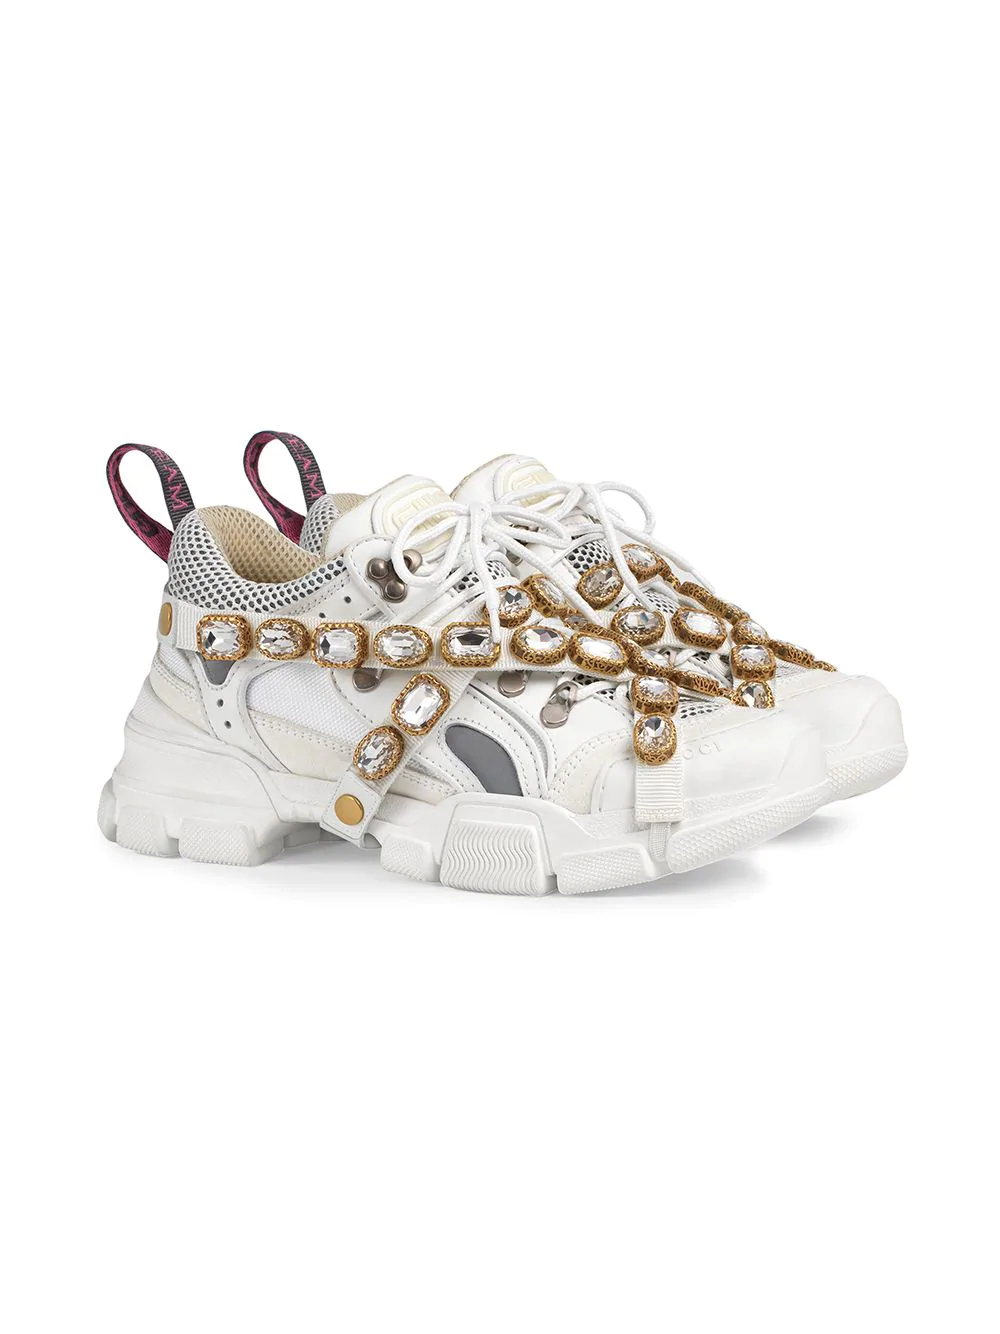 GUCCI Flashtrek sneakers with removable crystals, 2347лв.